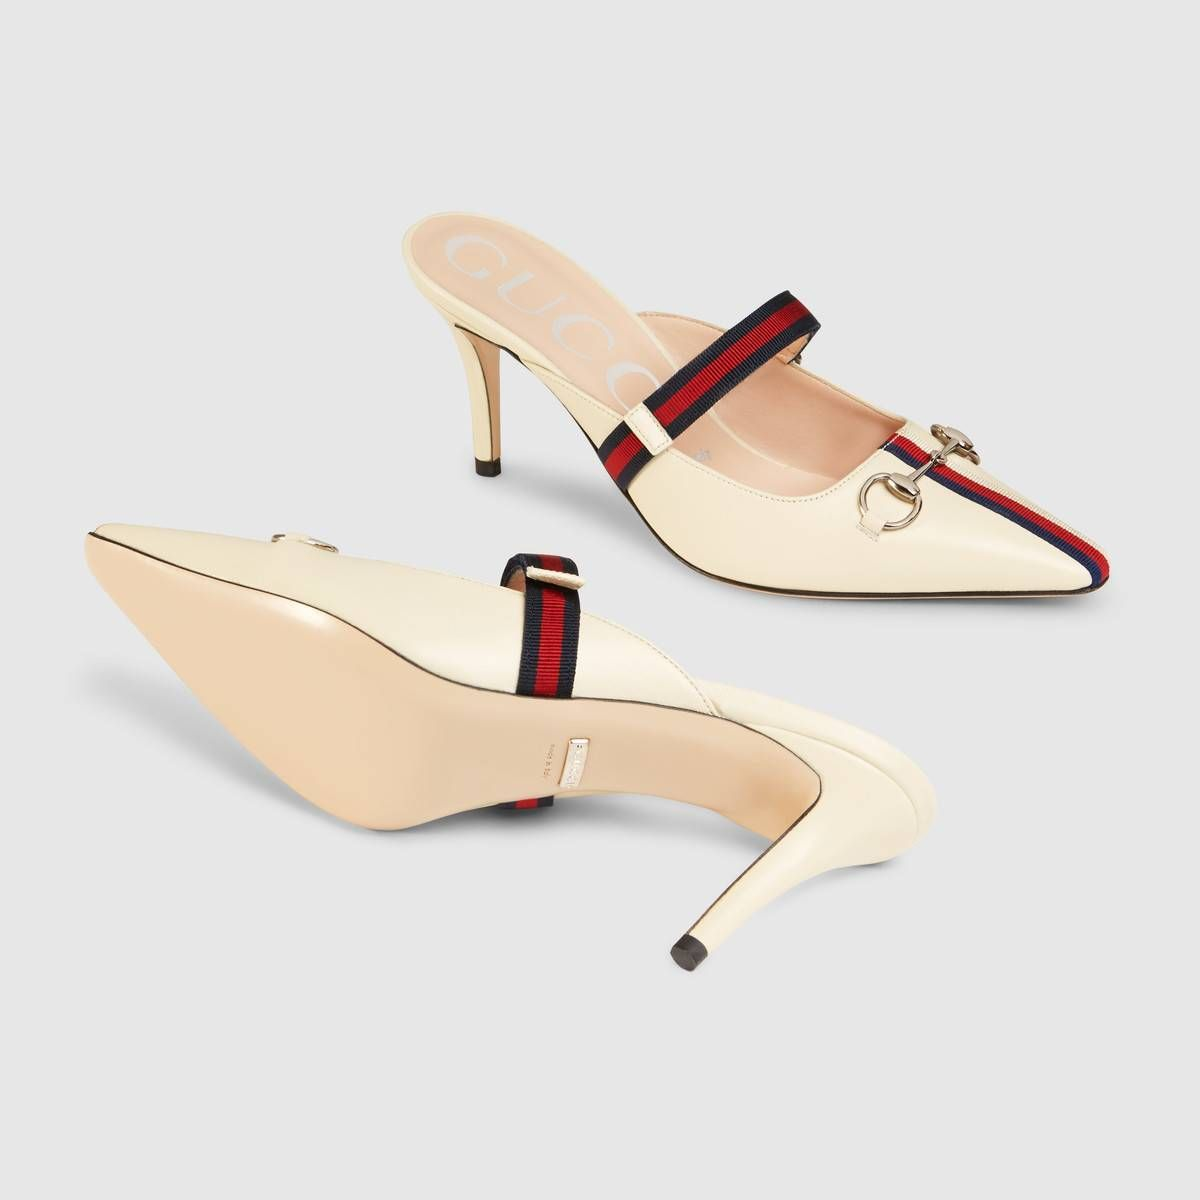 c198bddfc Gucci Mid-heel slide with Web in 2019 | Gucci collection | Heels ...